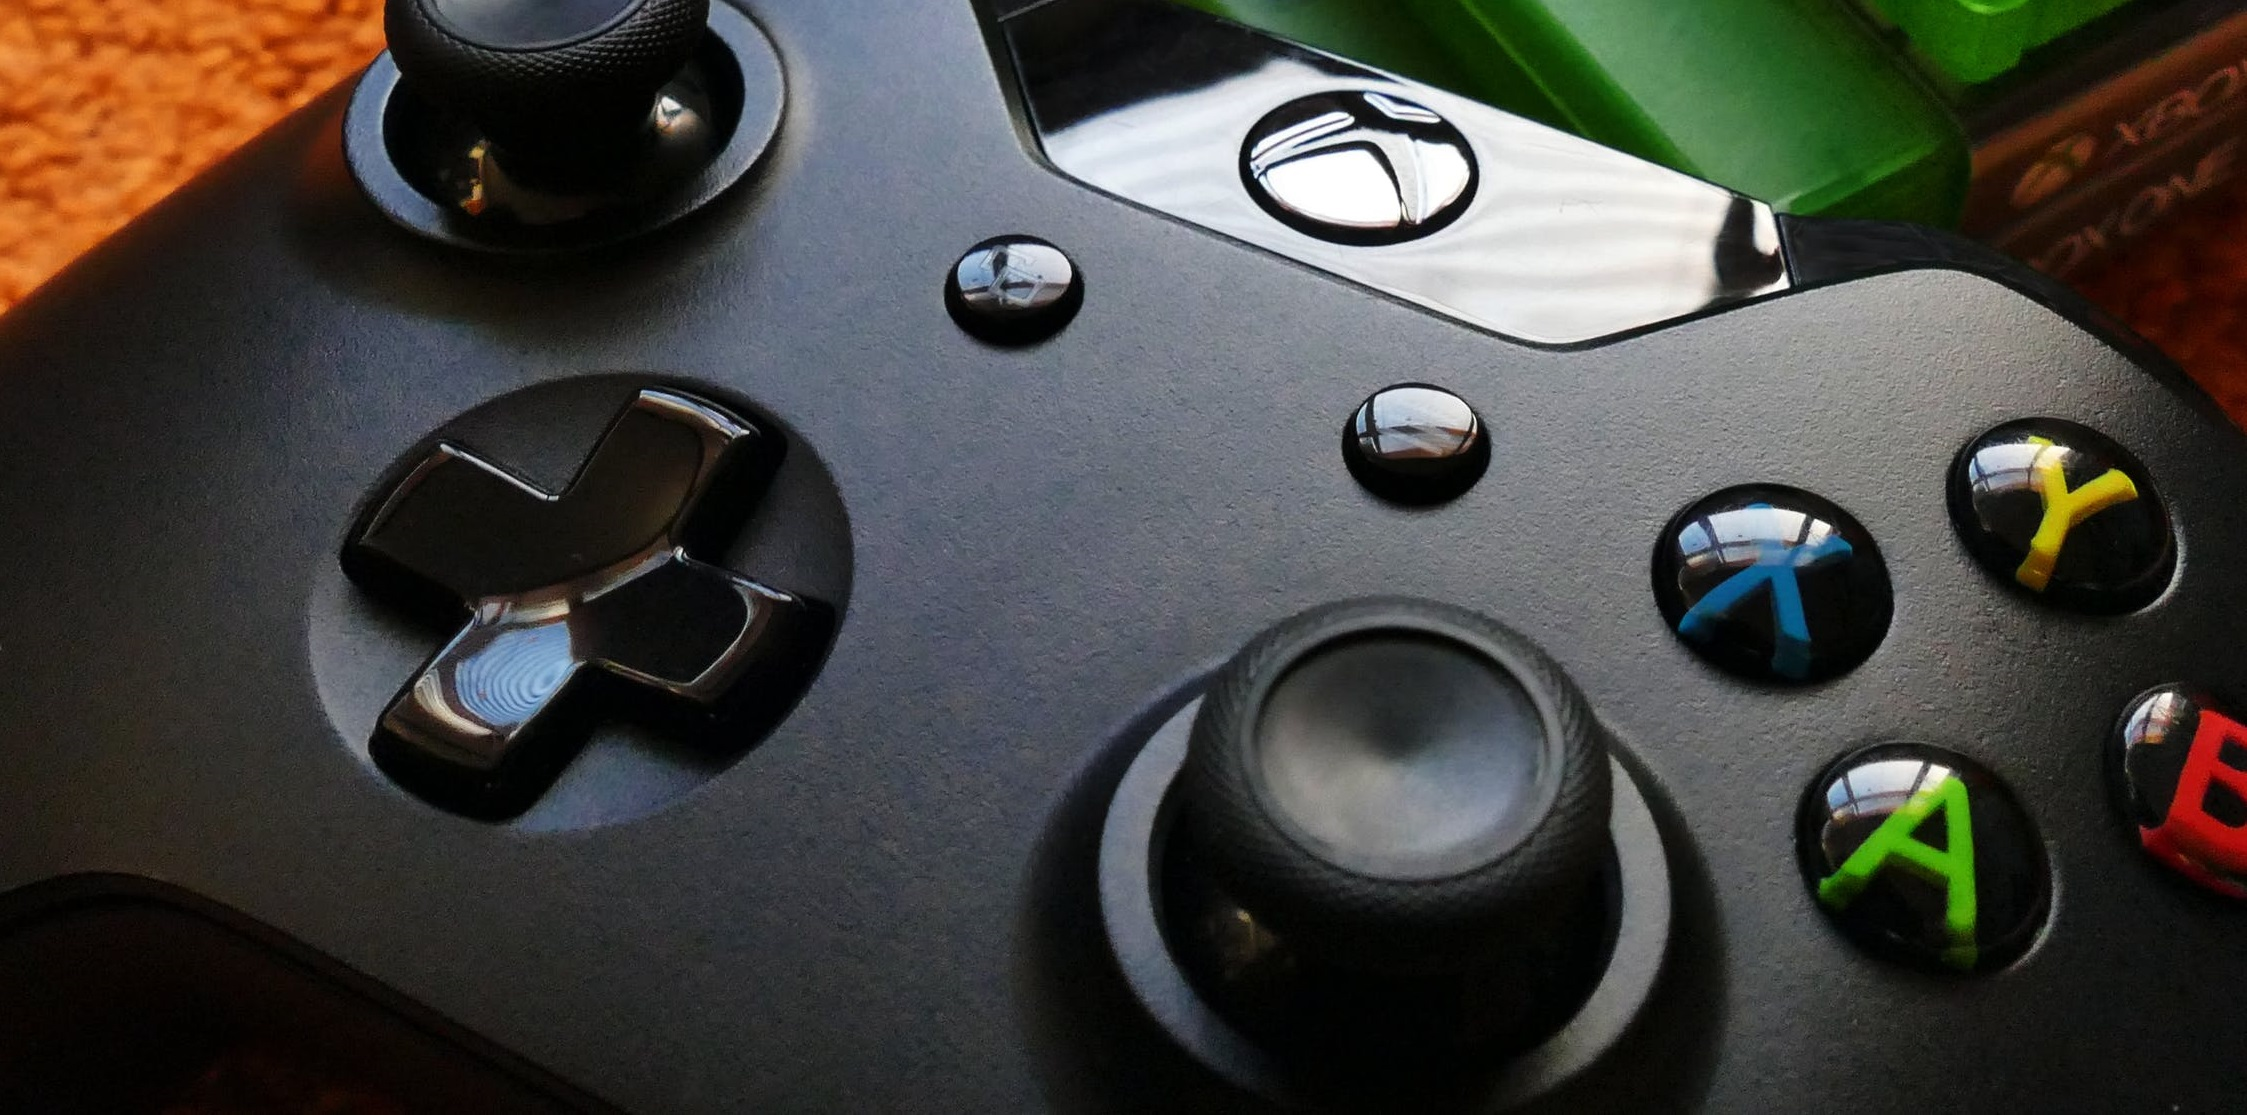 How to Tweak Your Xbox Privacy Settings for Online Safety screenshot